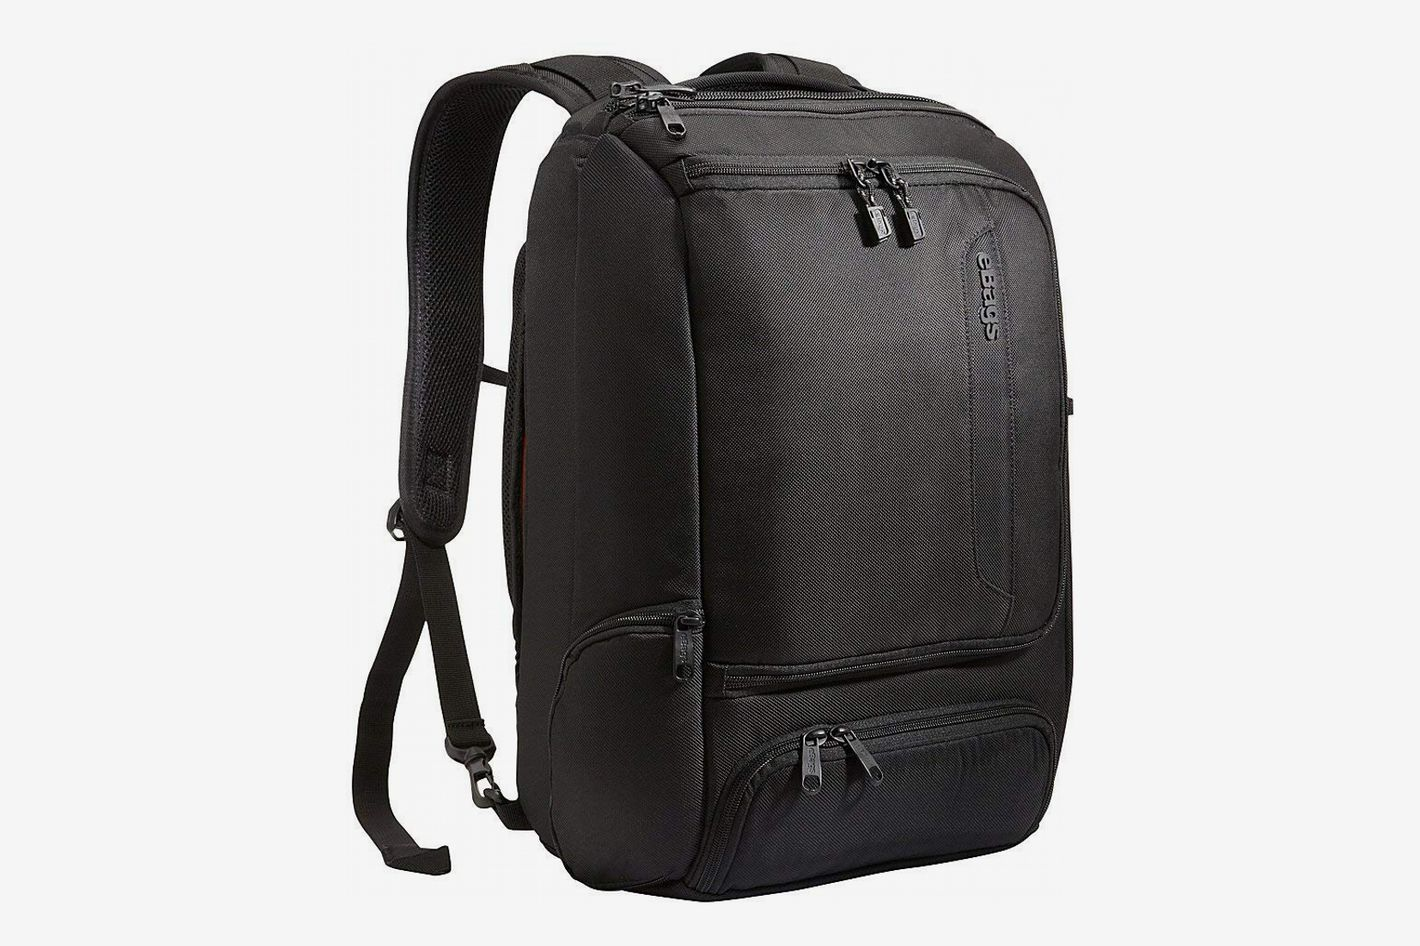 eBags Professional Slim Laptop Backpack 79ad1409e4e28